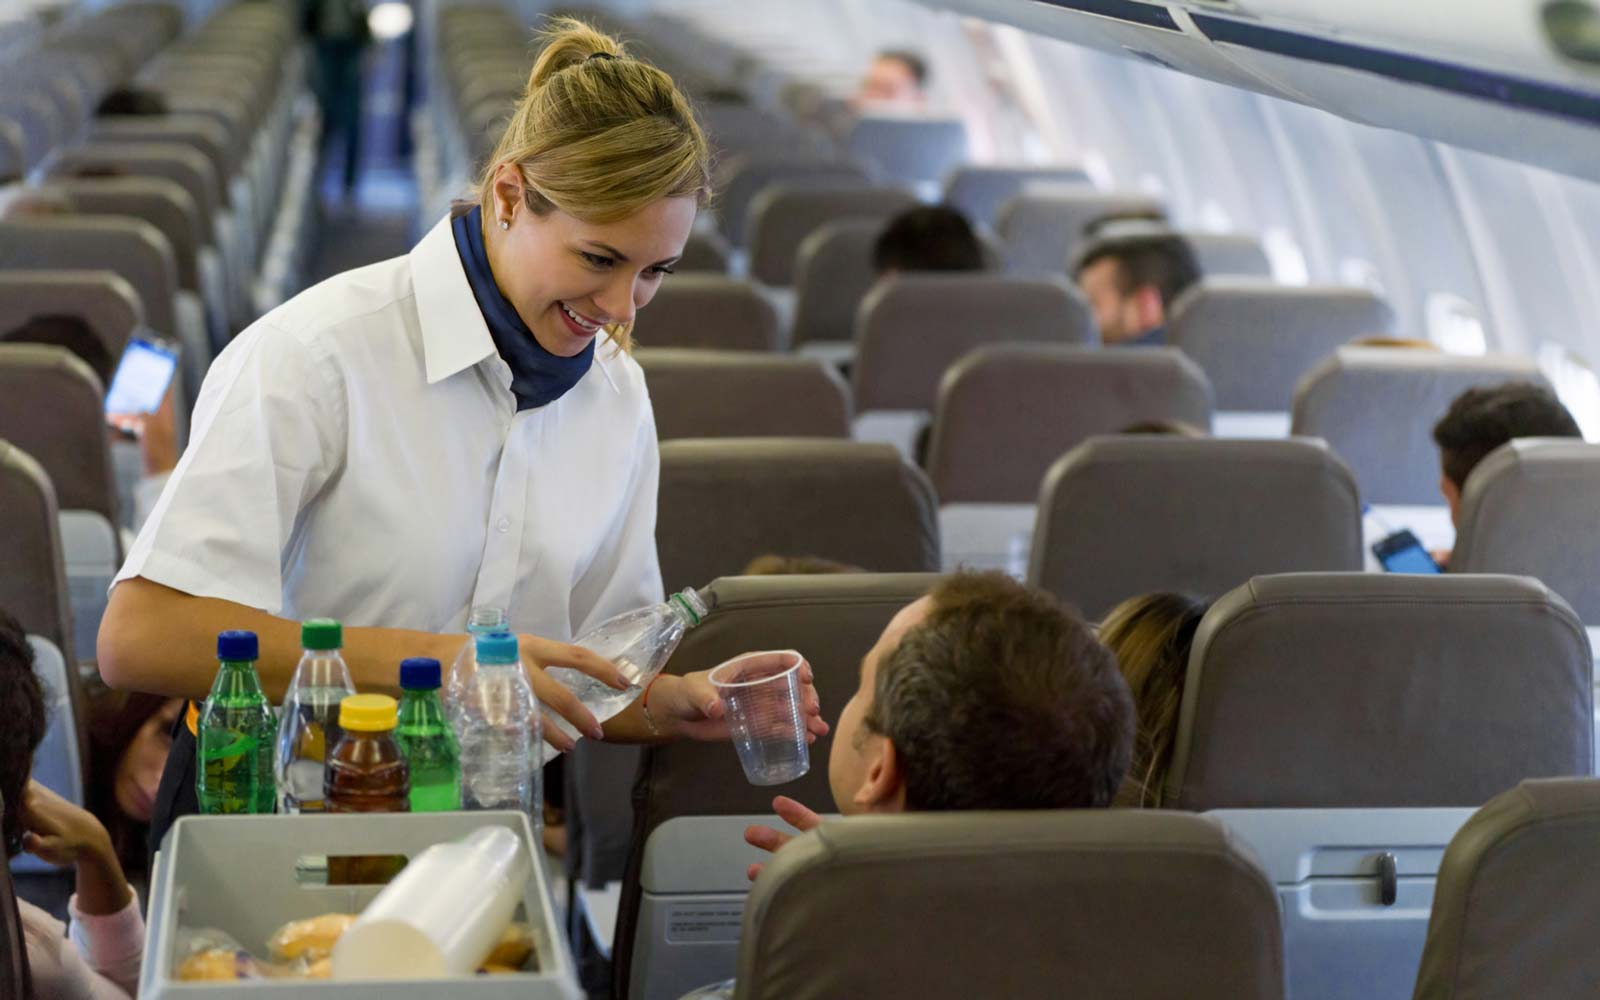 A Simple Trick for Getting the Best Service From Flight Attendants, According to the World's Most Frequent Flier